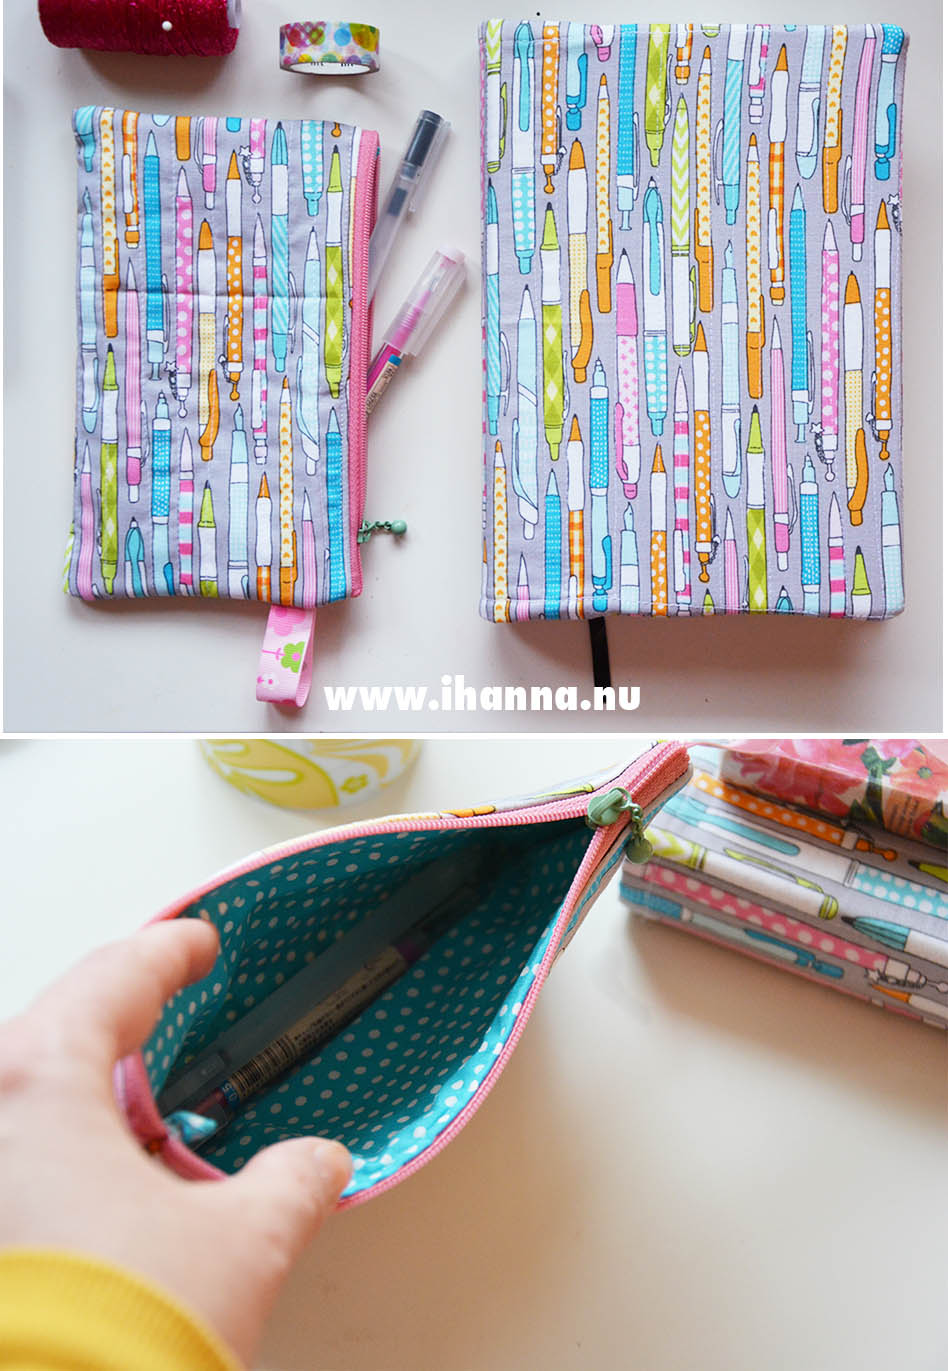 Pen case to go along with my diary sewn by mom - photo copyright Hanna Andersson